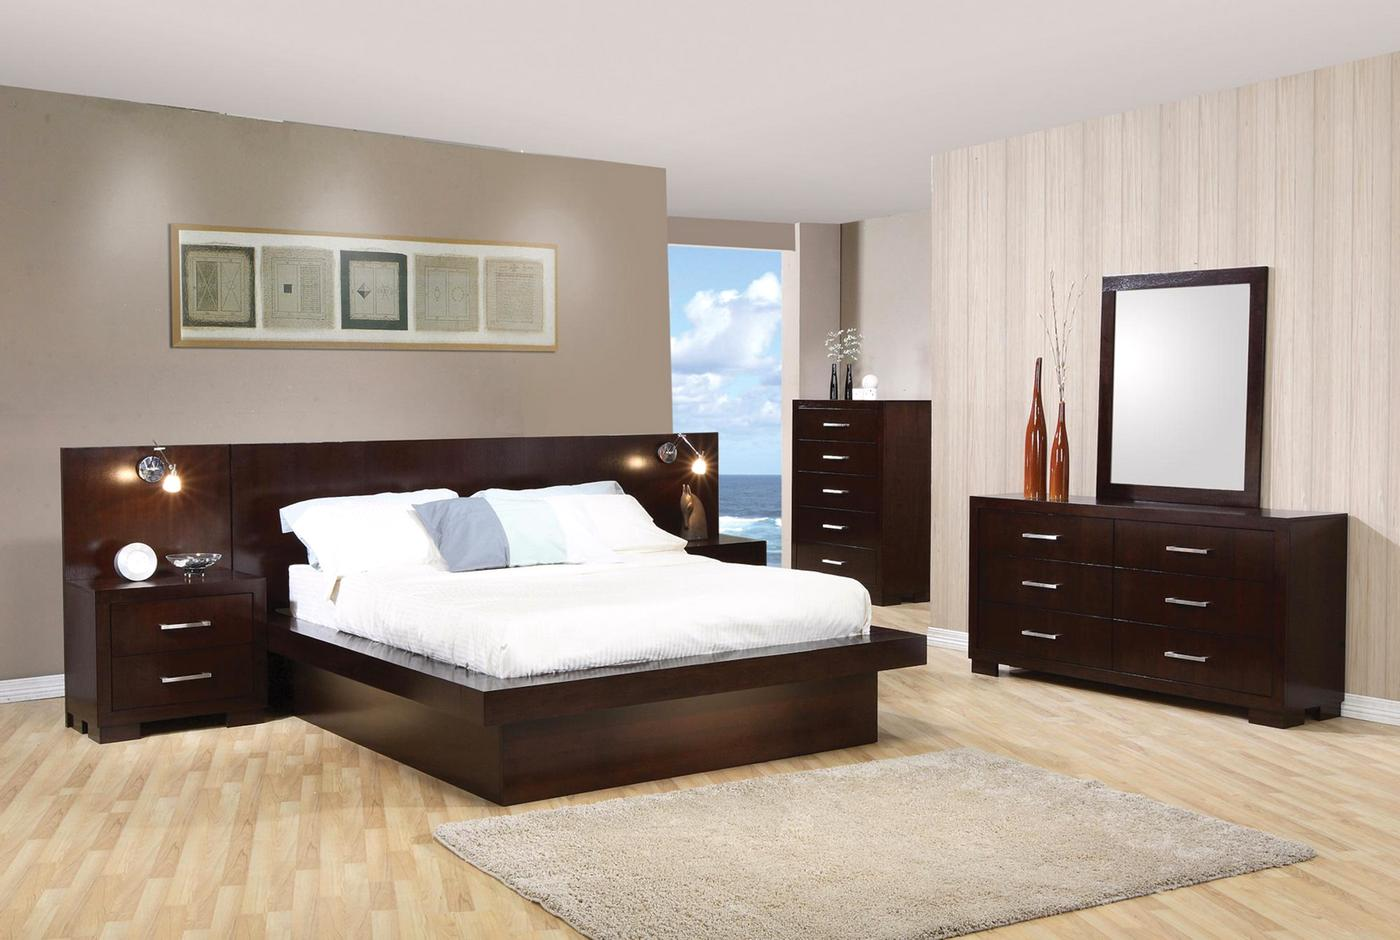 Jessica modern platform cappuccino finish bedroom set free - Contemporary king bedroom furniture ...